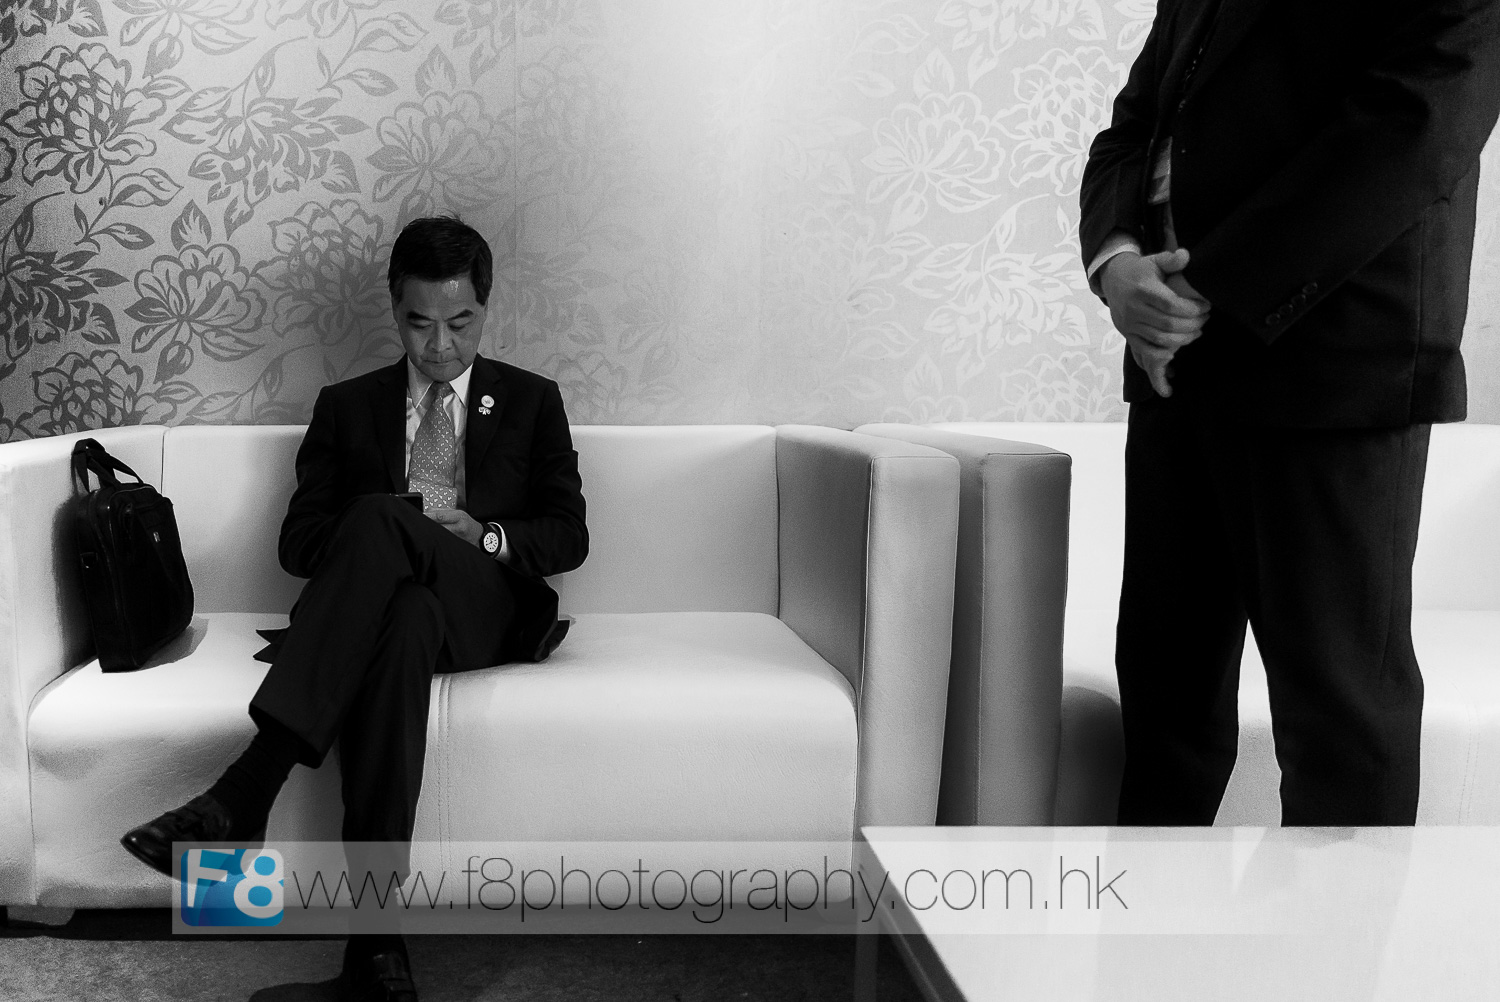 chief executive of hong kong, mr cy leung checks his speech notes before going on stage in front of thousands of ceo's and vvip guests at apec 2015.  his bodyguard stands close by.